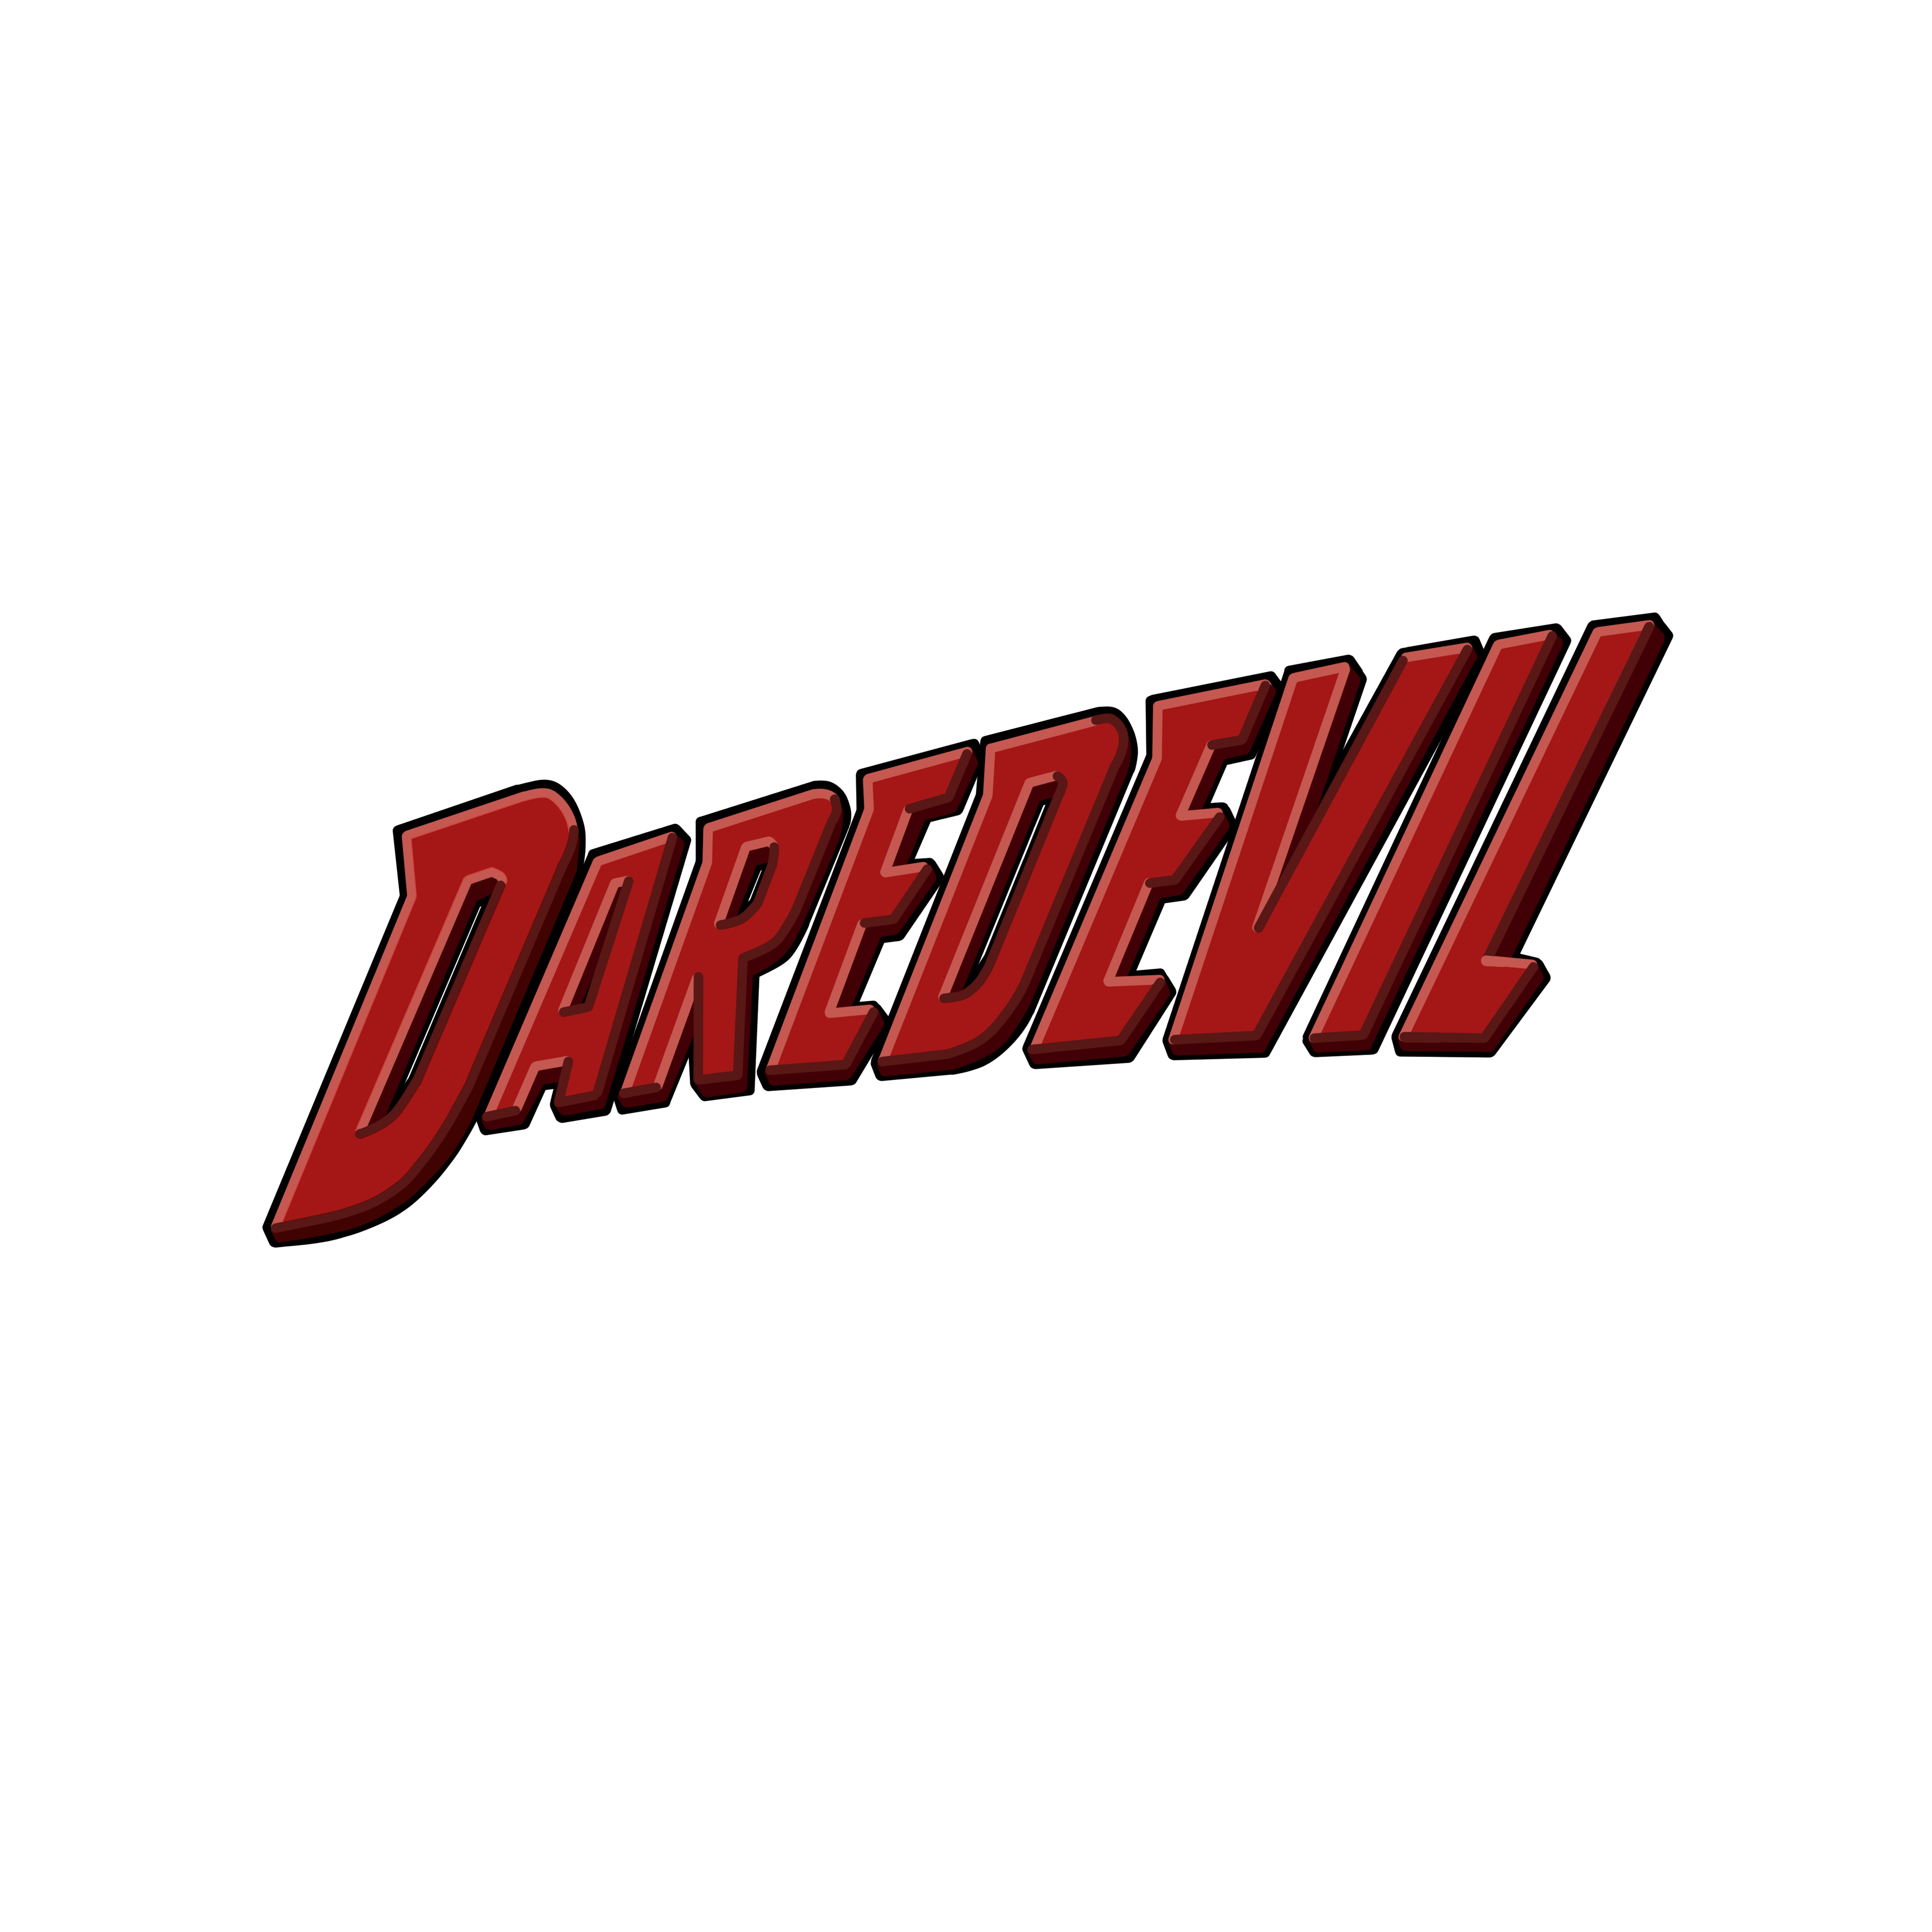 daredevil logo by esmasrico on deviantart